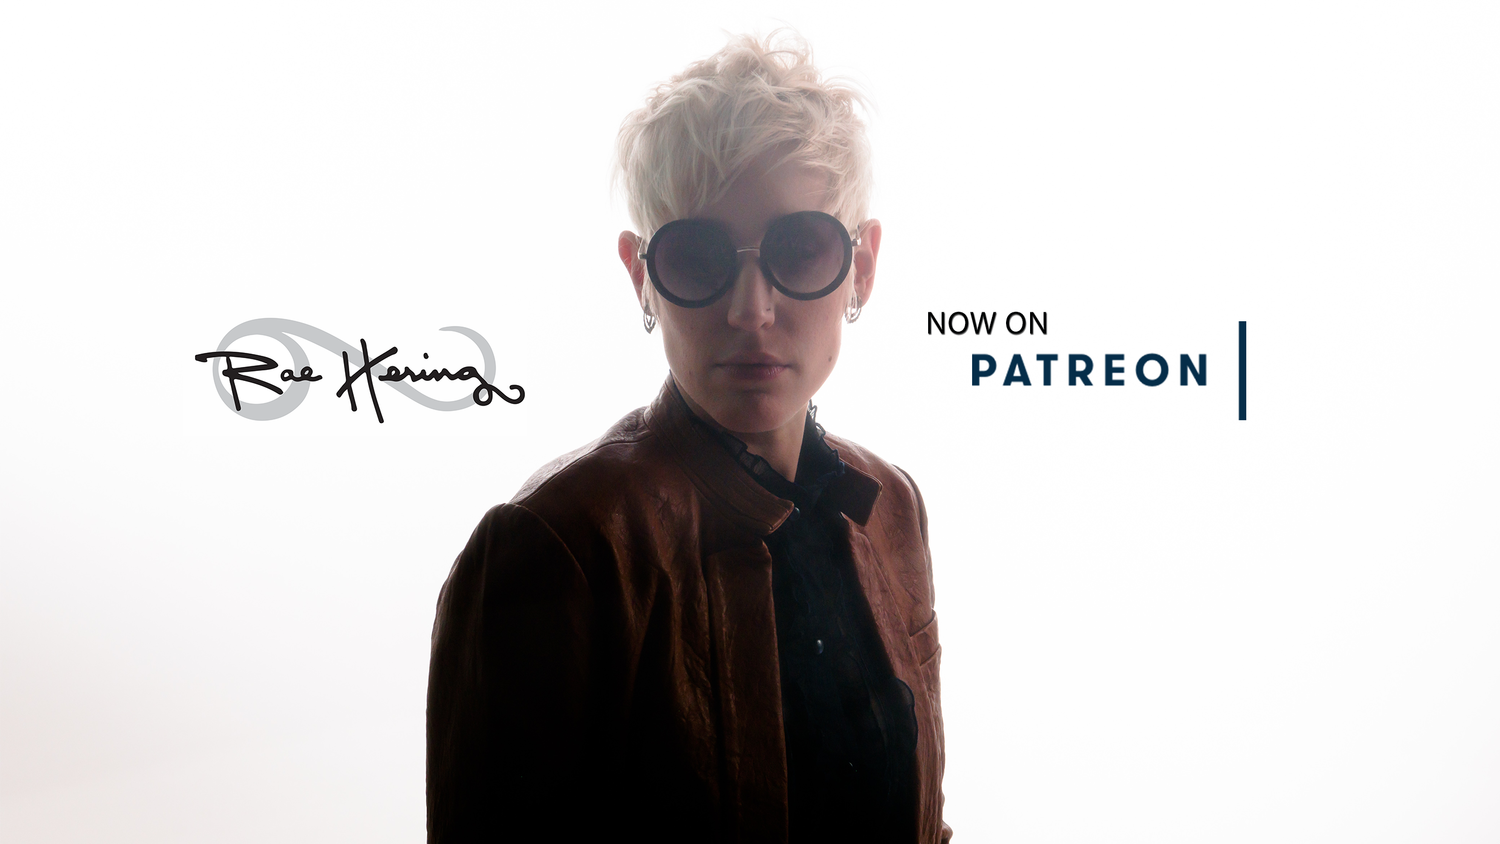 I'm Now On Patreon! — Rae Hering